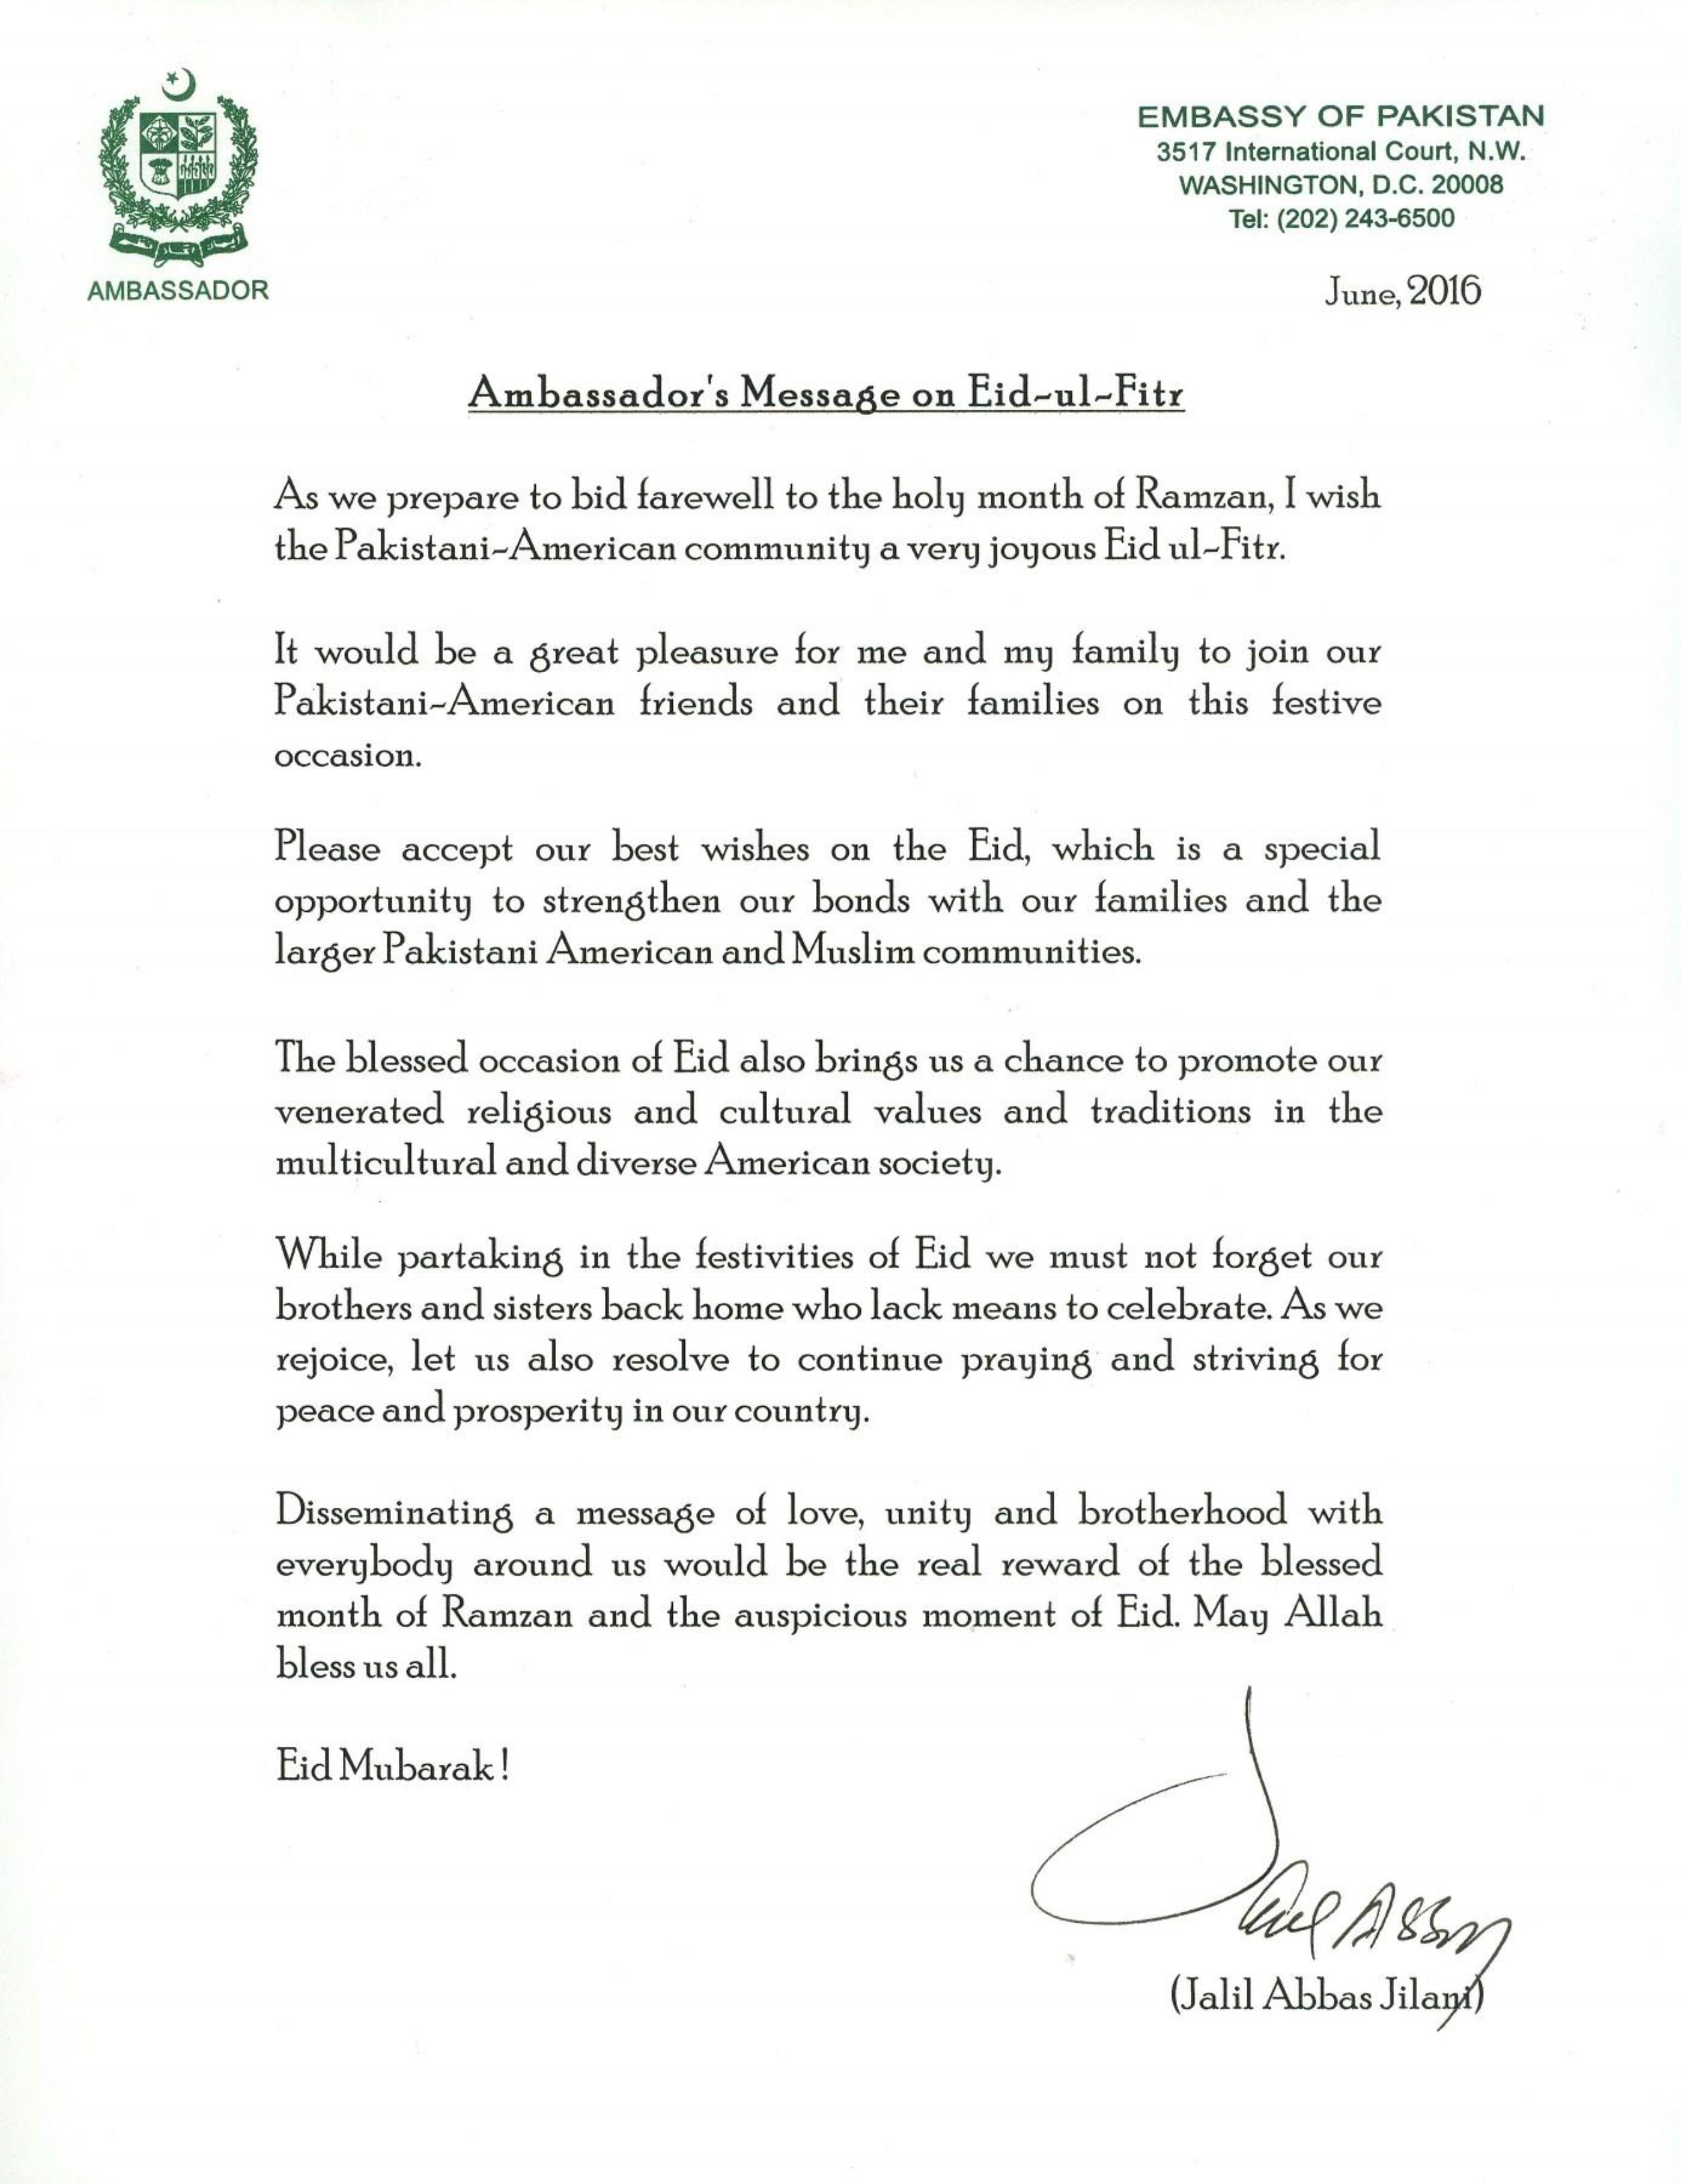 Simple Letter Eid Al-Fitr Greeting - Ambassadors-Message-on-Eid-ul-Fitr-June-2016  Perfect Image Reference_73370 .png